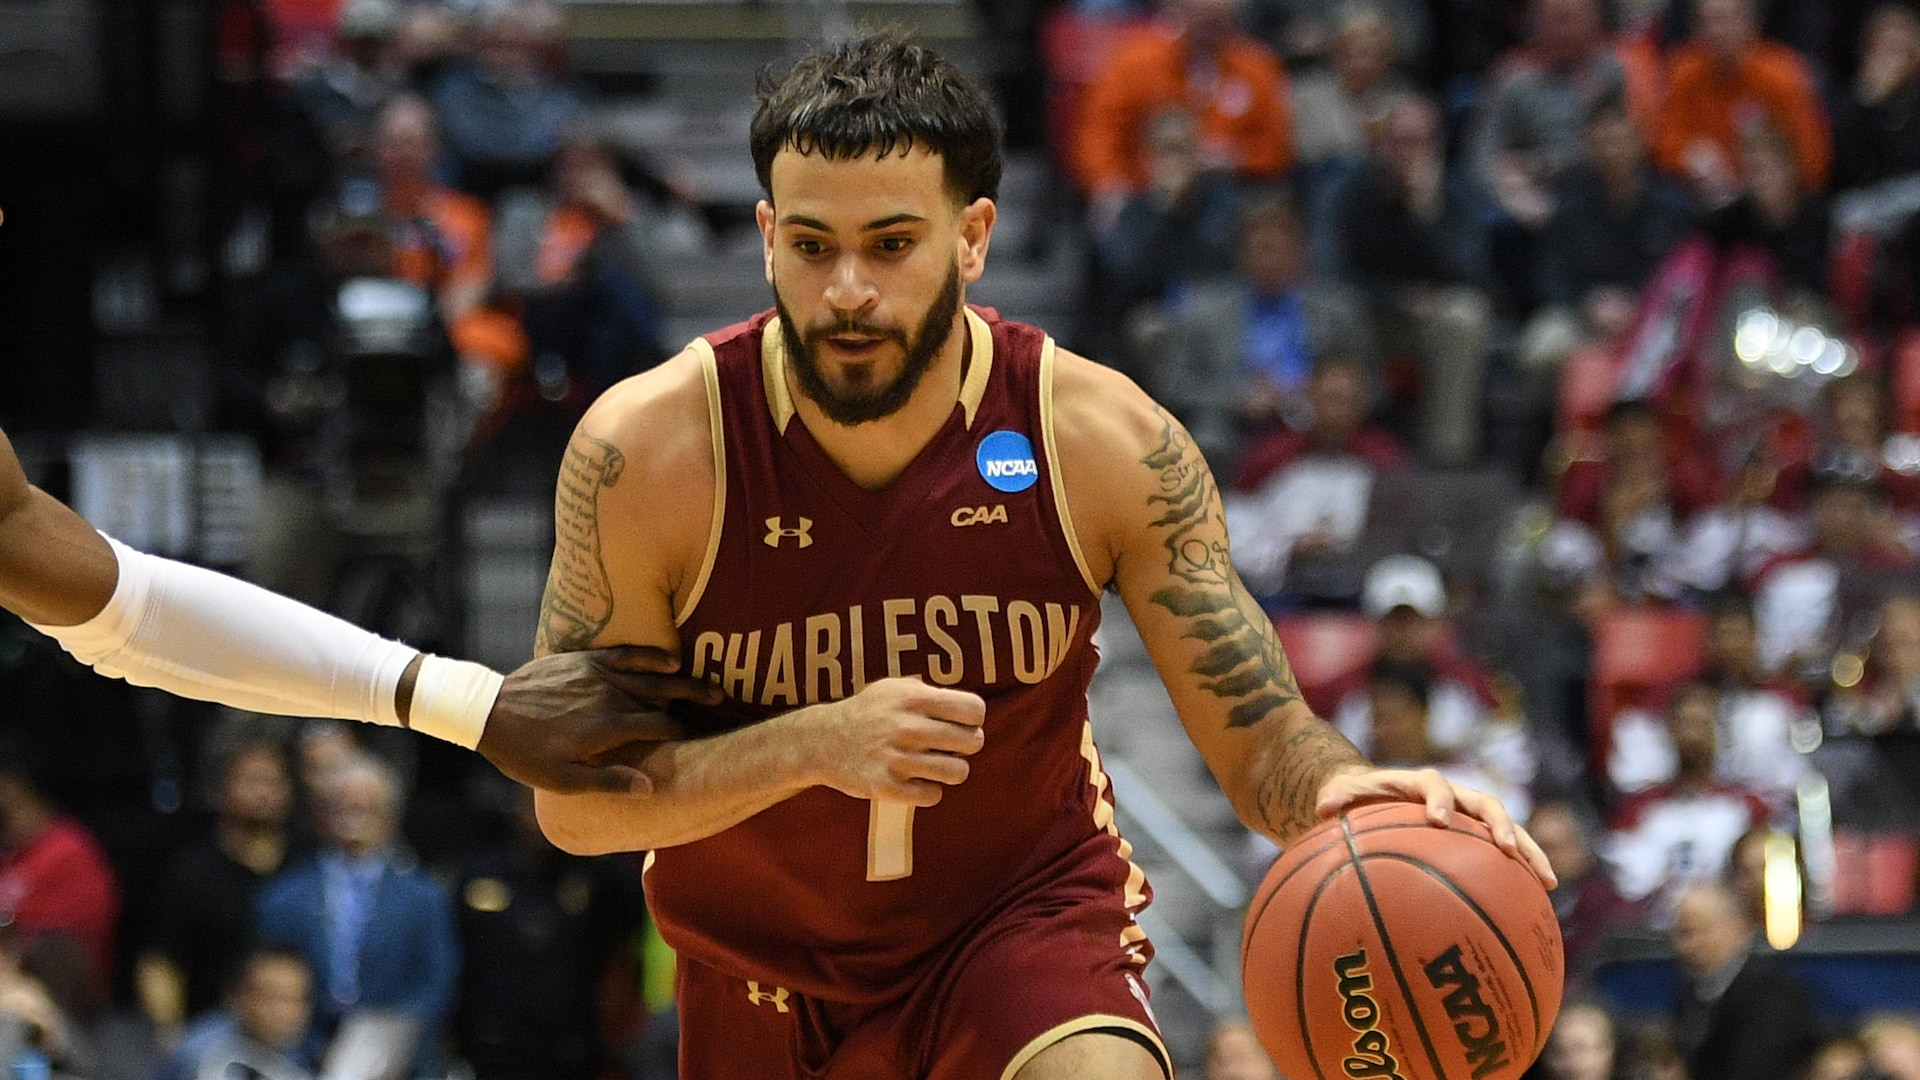 Charleston's Grant Riller stuffing the stat sheet and catching attention of NBA scouts